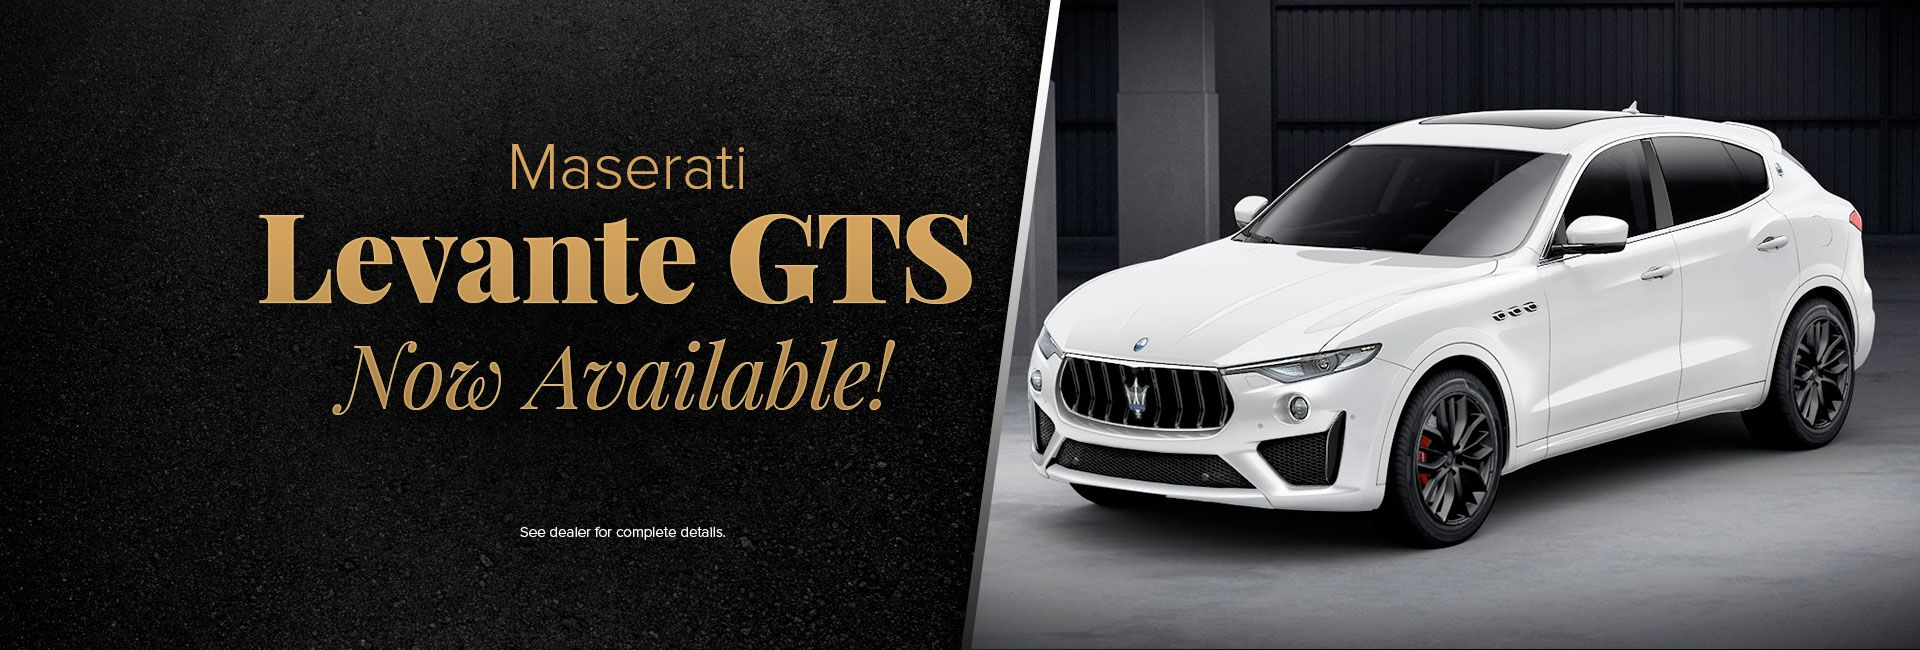 Maserati And Lotus Dealership Greenville Sc Used Cars Maserati